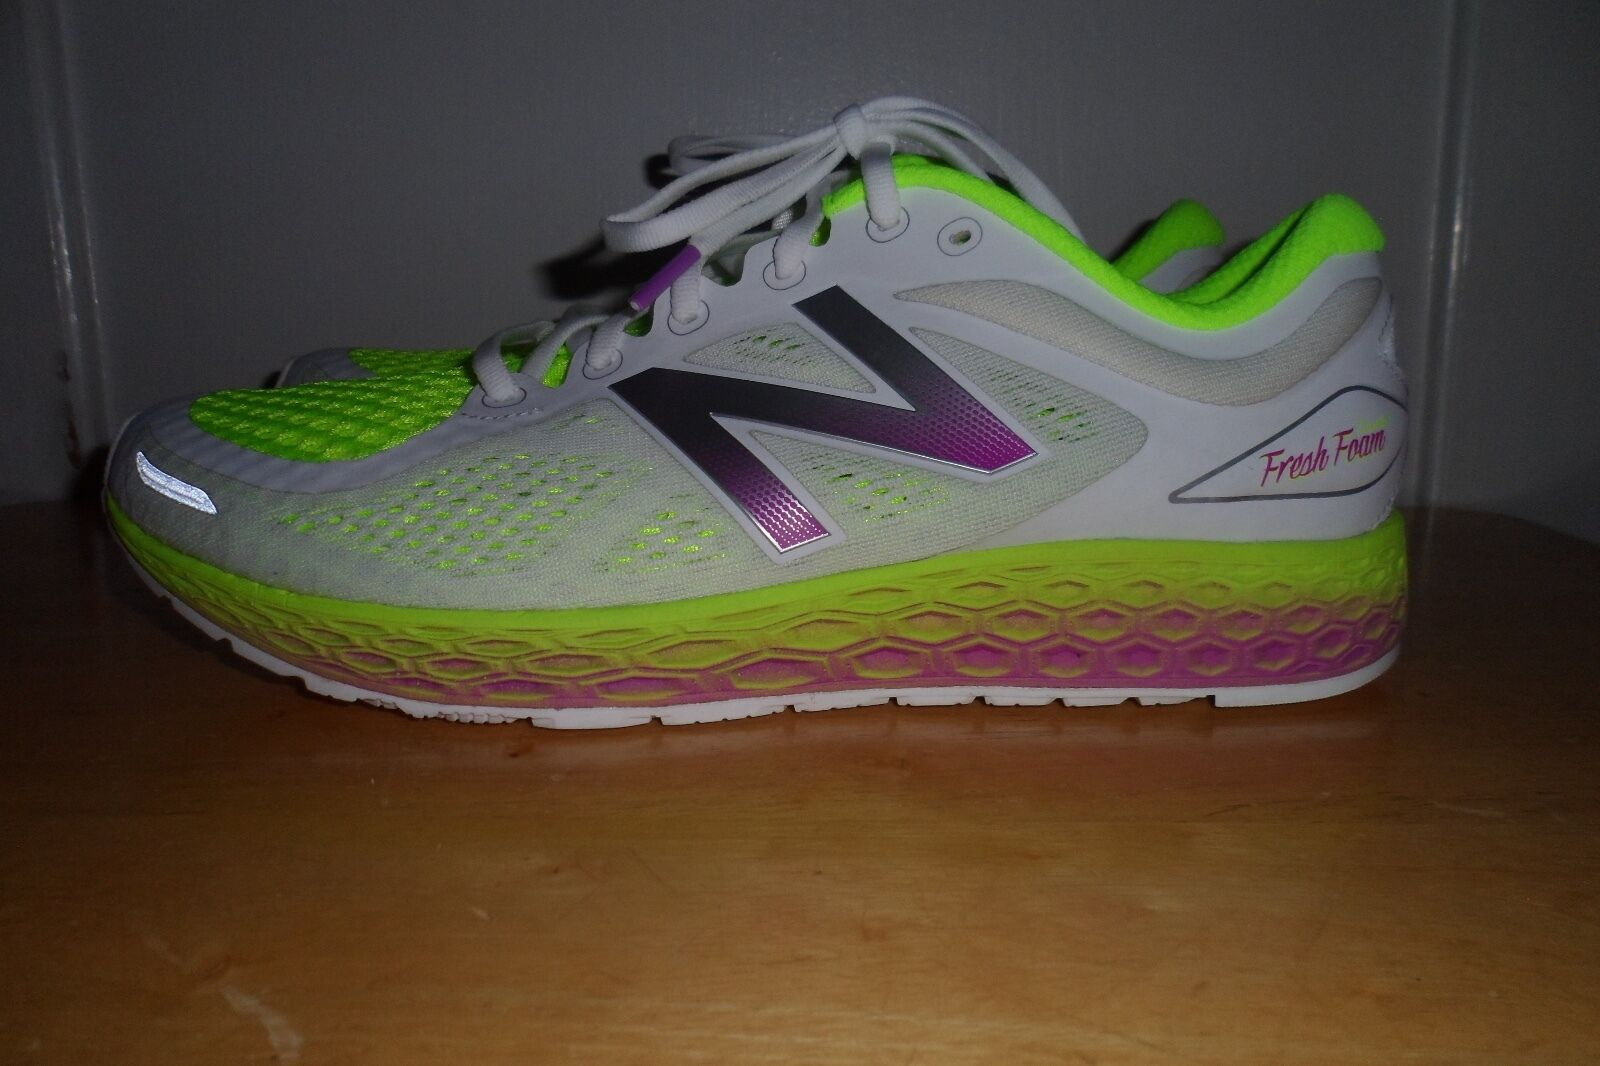 MUST SEE FABULOUS 2016 NEW BALANCE WZANTHT2 FRESH WOMEN FOAM ZANTE V2 SHOE WOMEN FRESH 11 B b6bef1